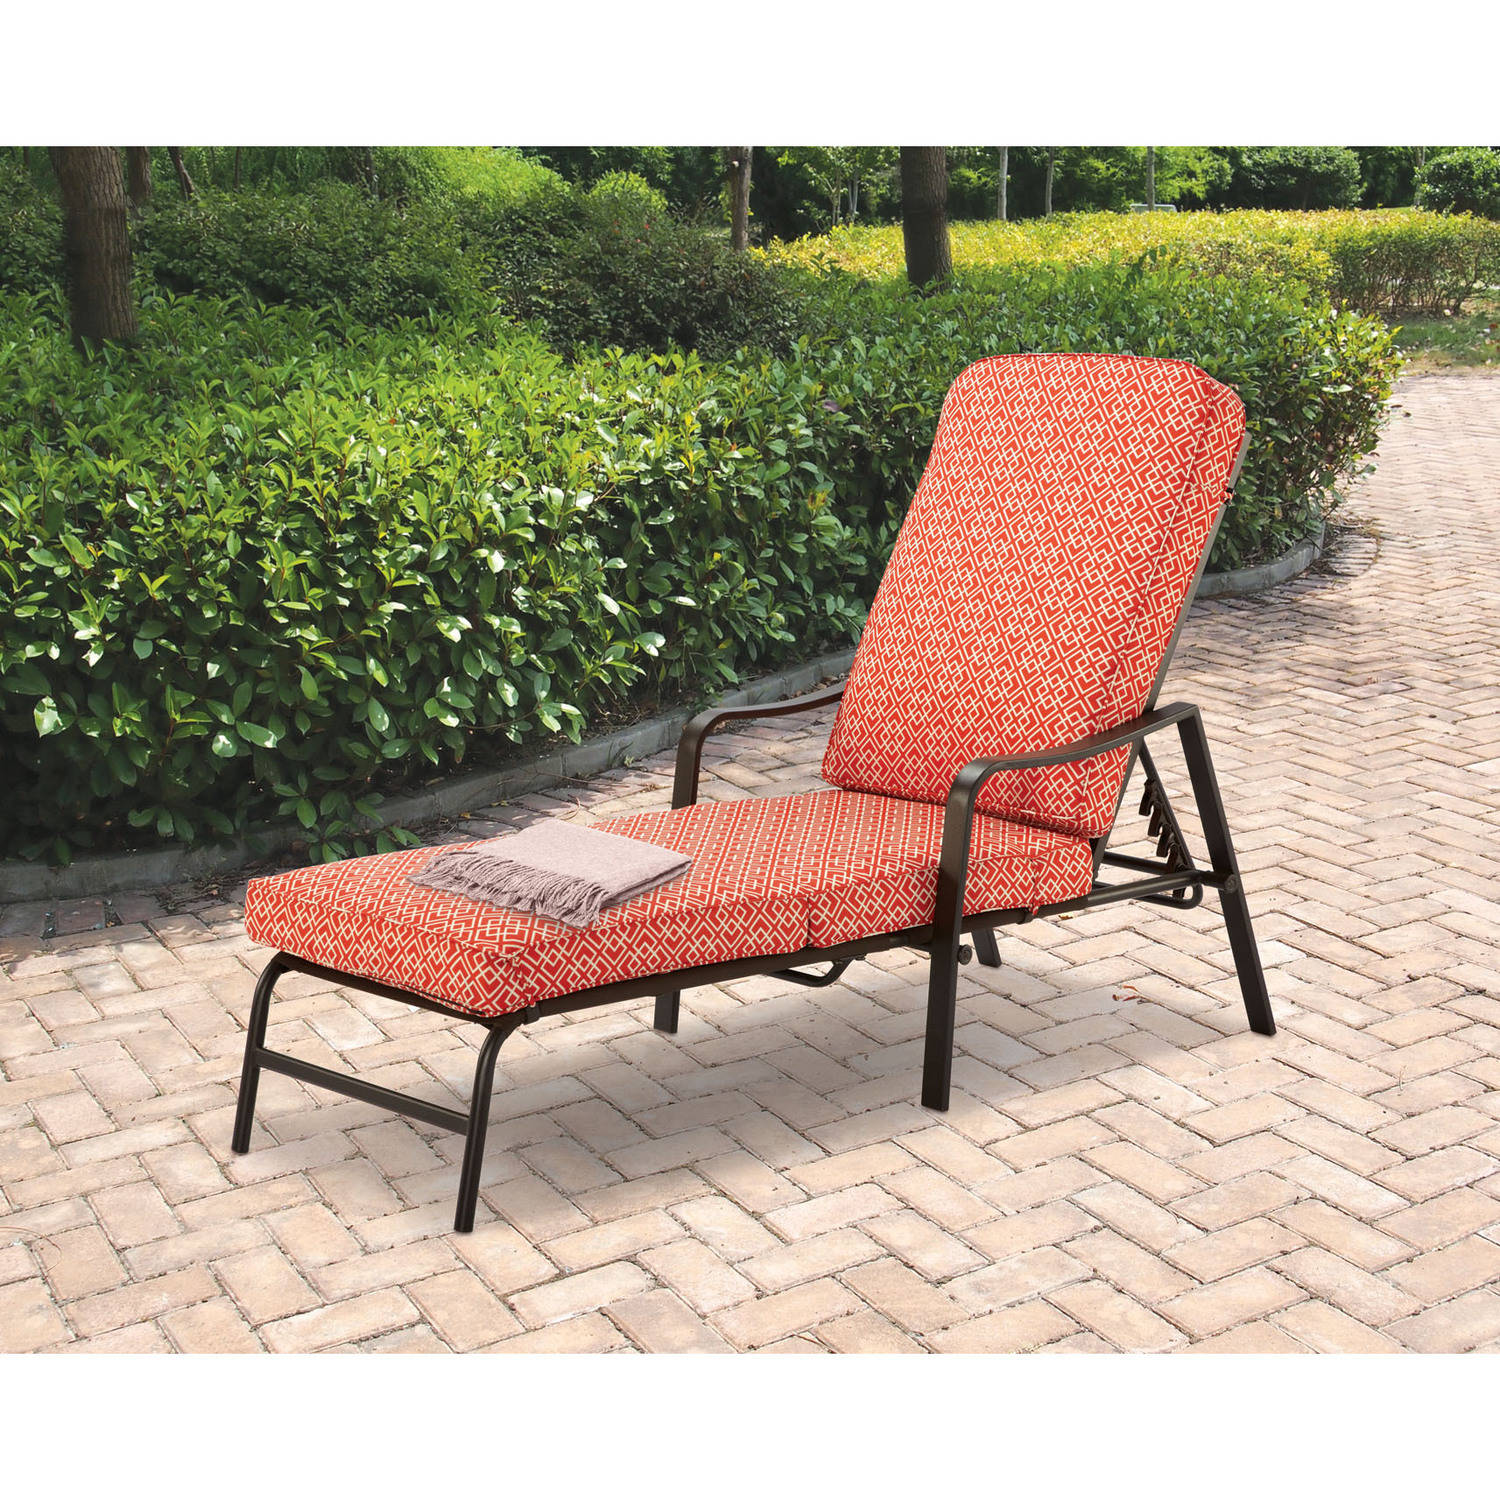 Marvelous Mainstays Ragan Meadow II Piece Outdoor Sectional Sofa Seats Walmart